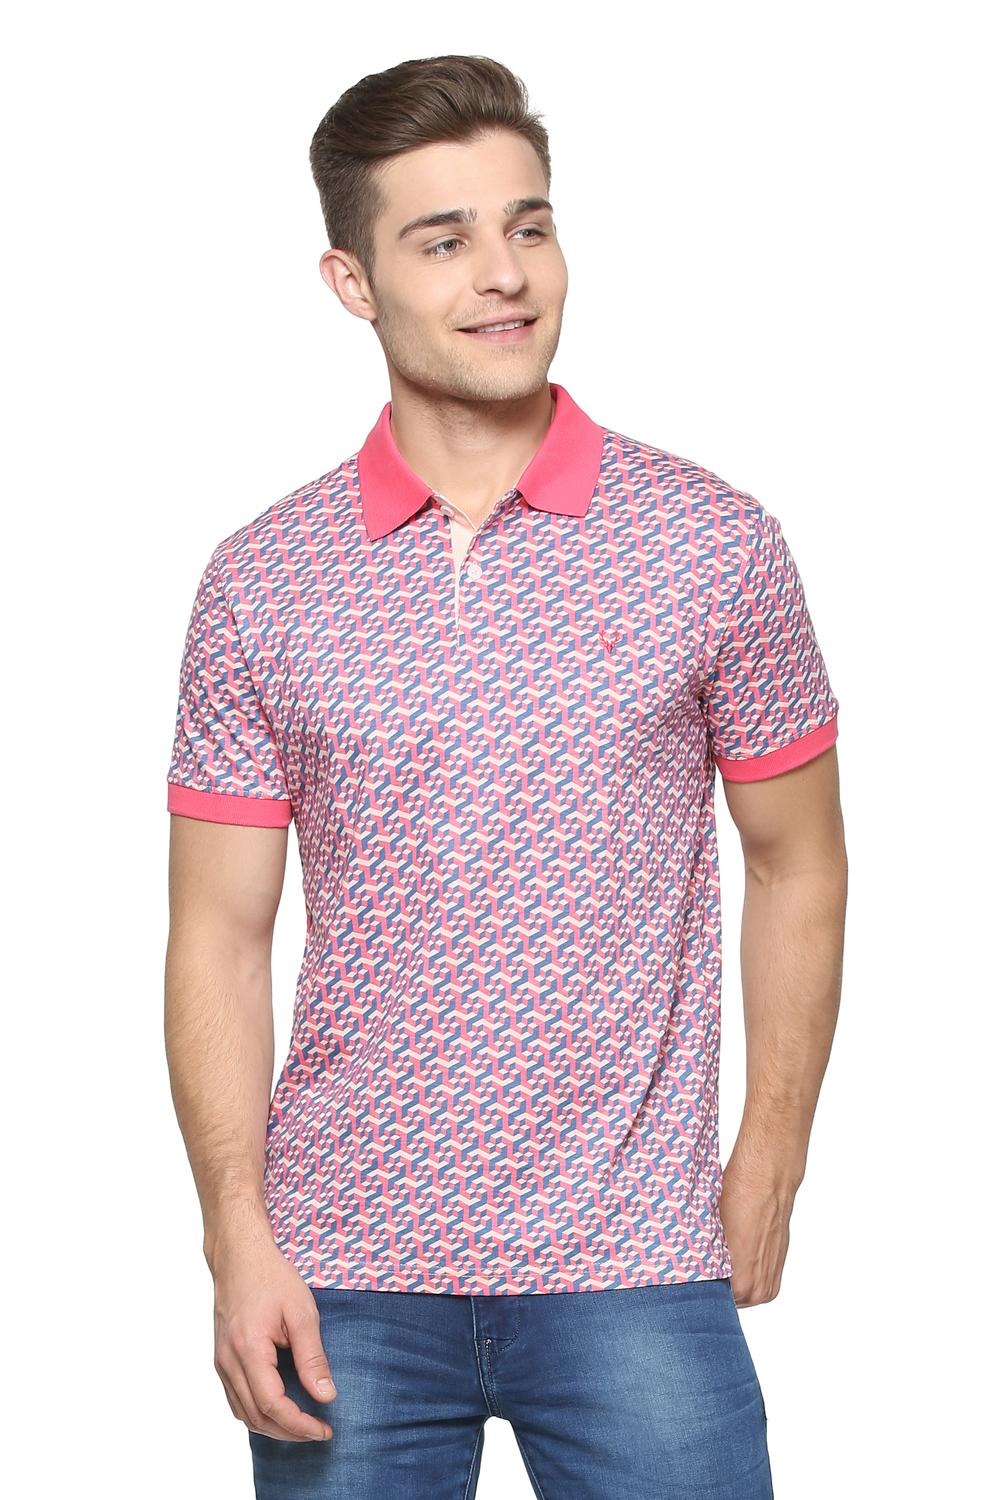 Allen Solly T Shirts Allen Solly Pink T Shirt For Men At Planetfashion In